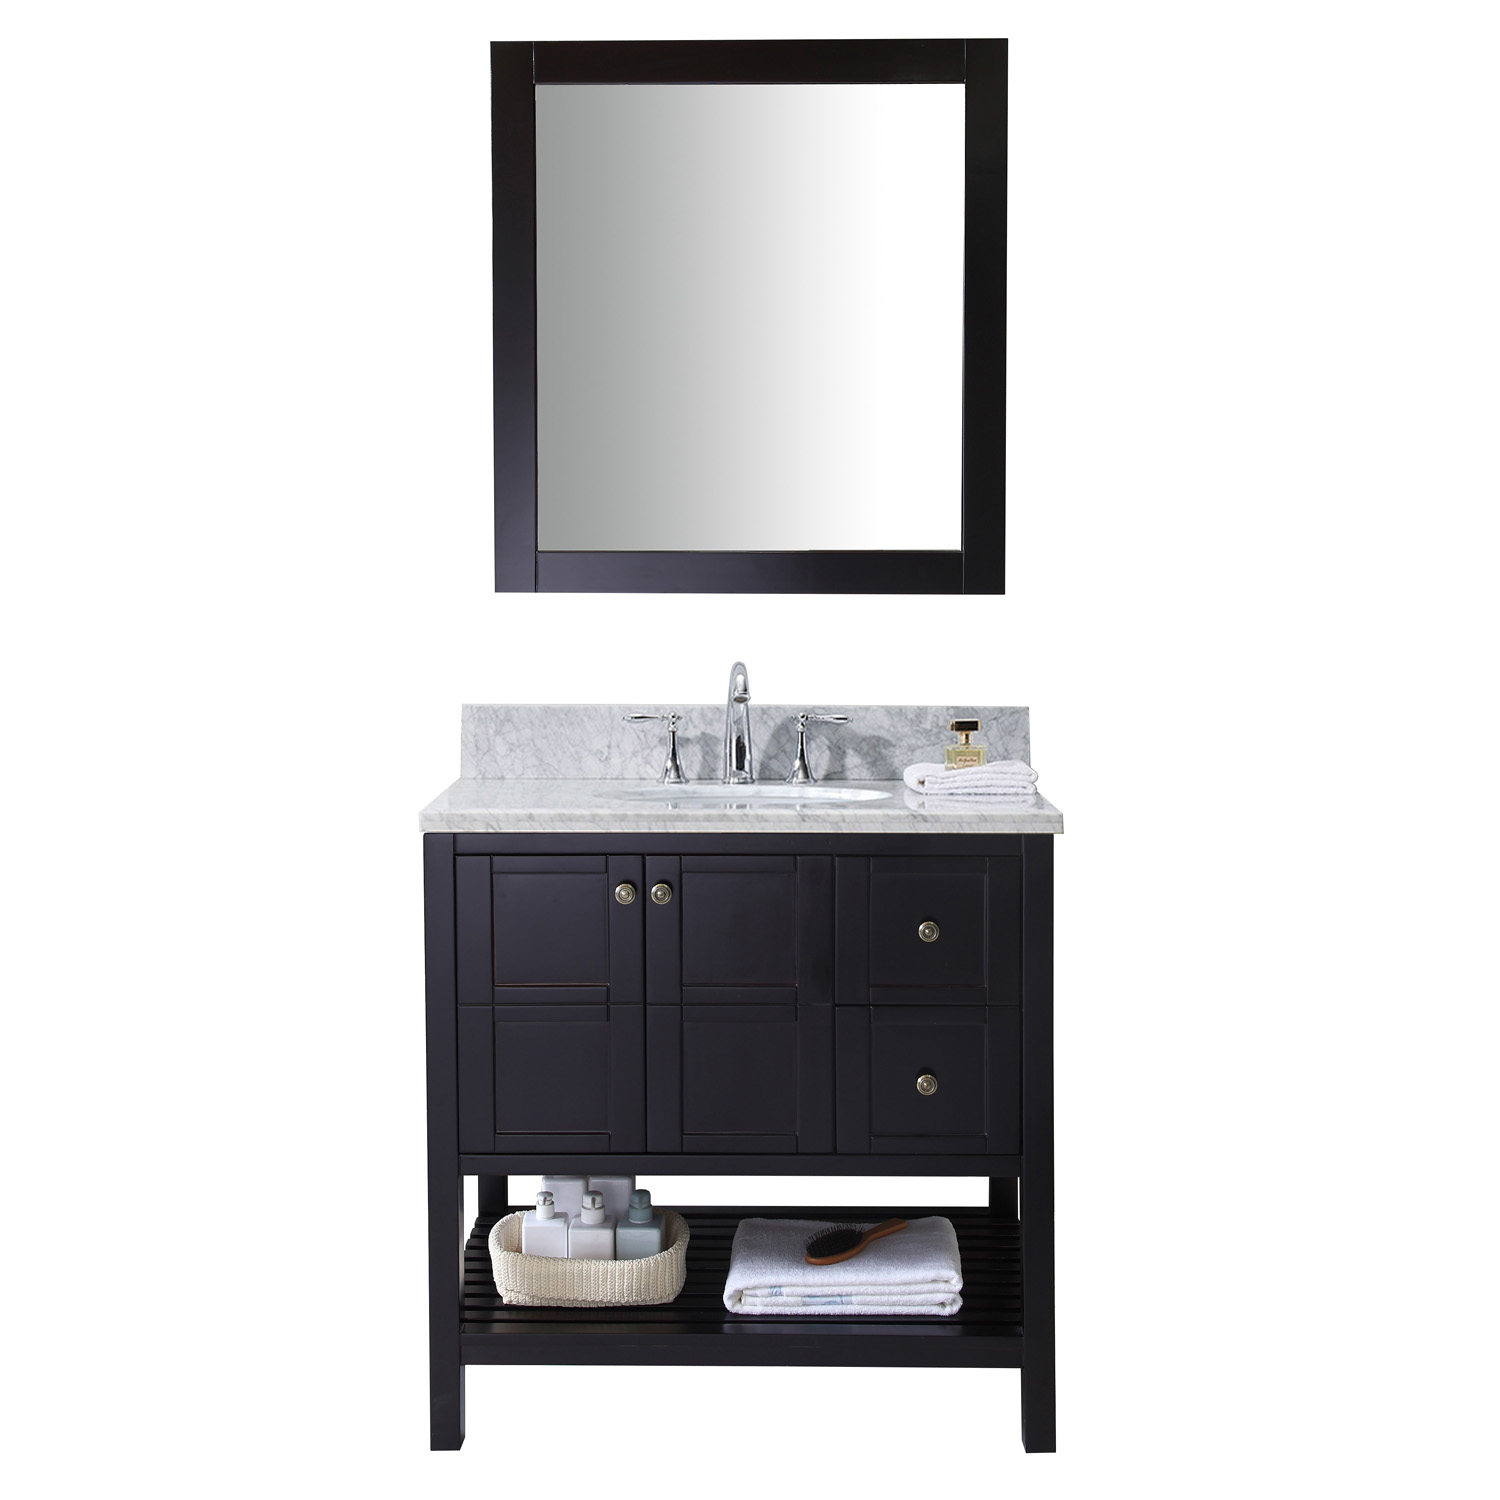 "36"" Single Bath Vanity in Espresso with Top, Sink and Mirror Options"